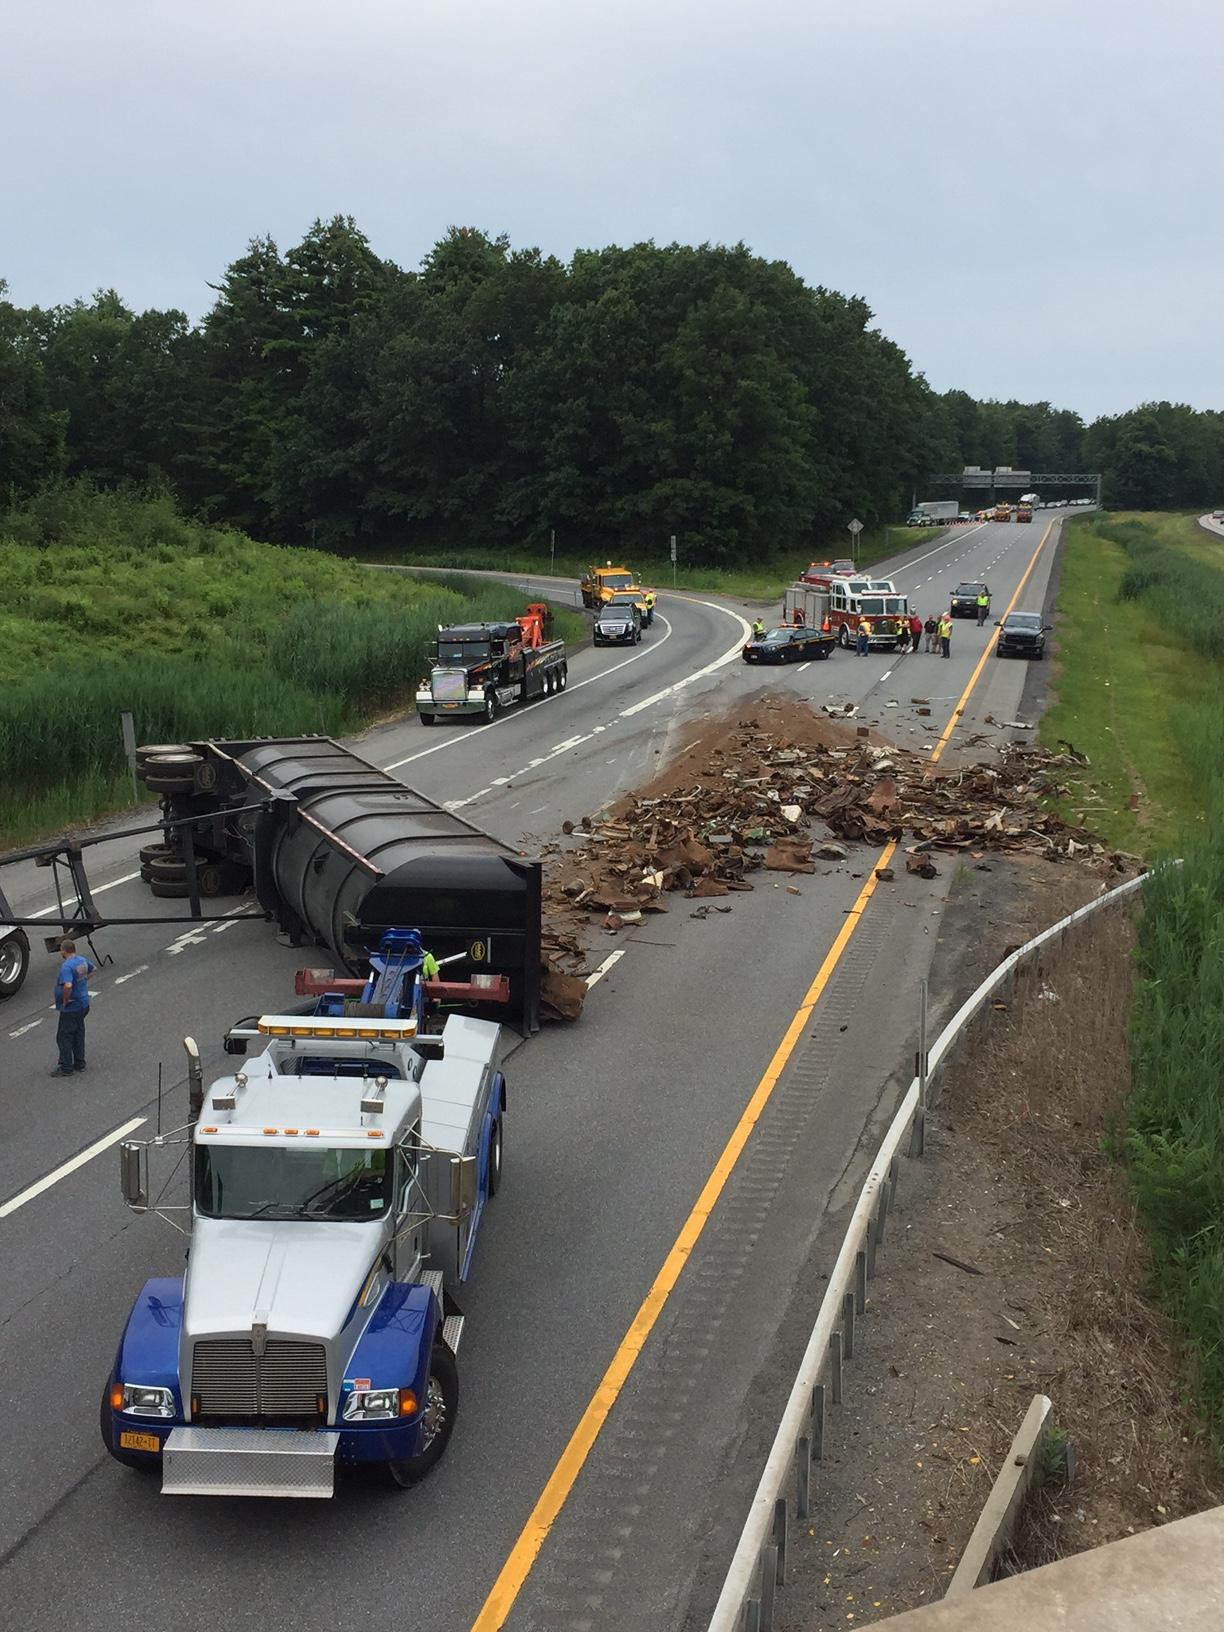 Tractor Trailer rollover on I87 southbound, debris scattered